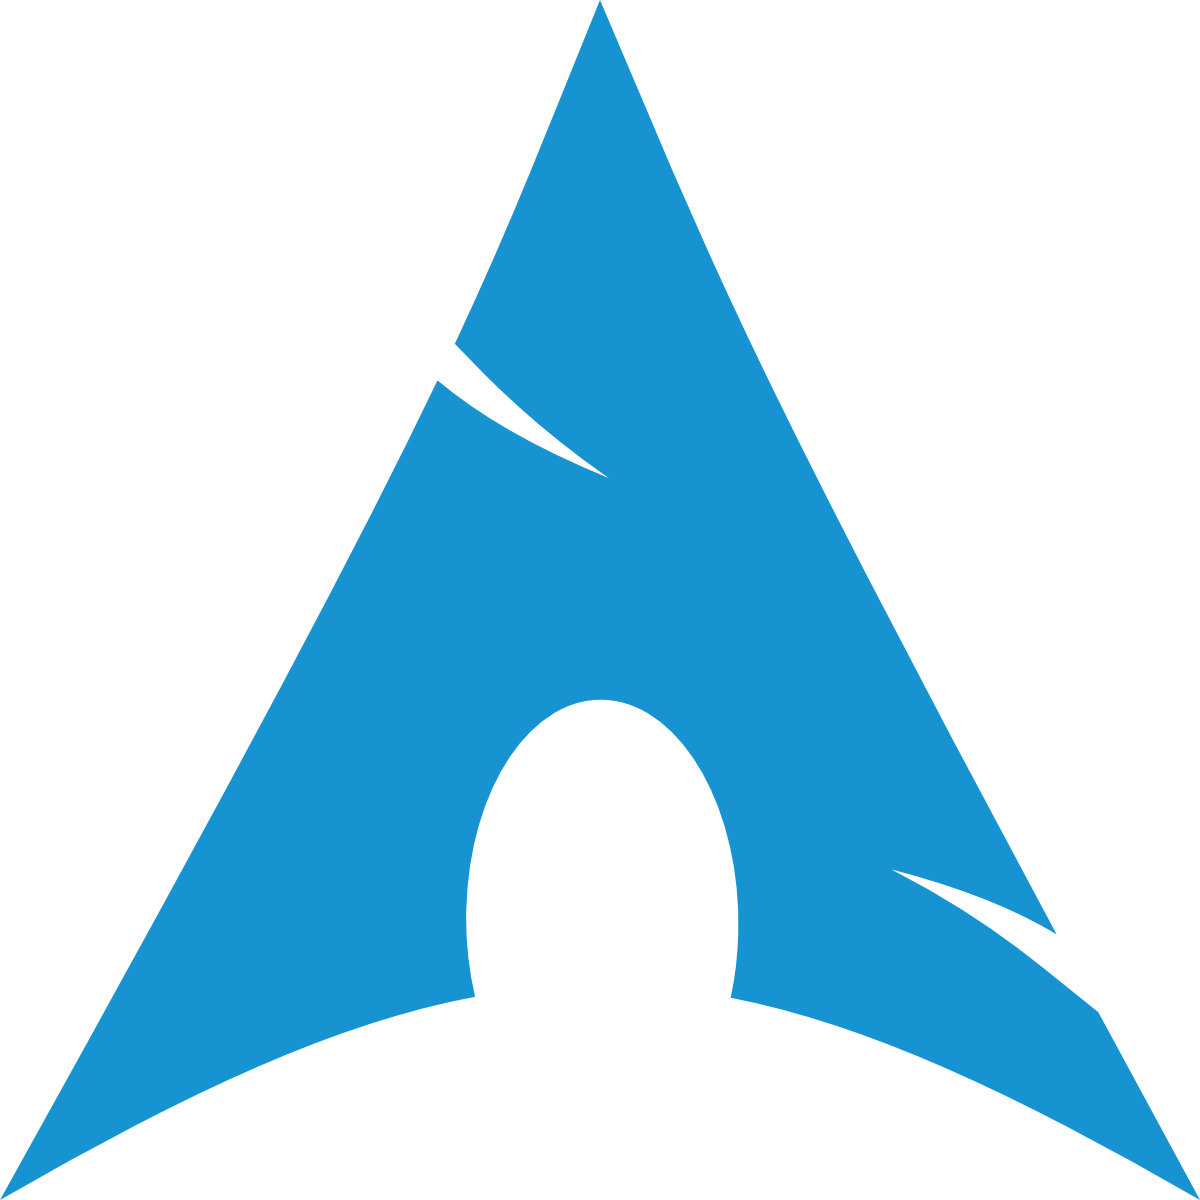 intro_course/img/arch_logo.png